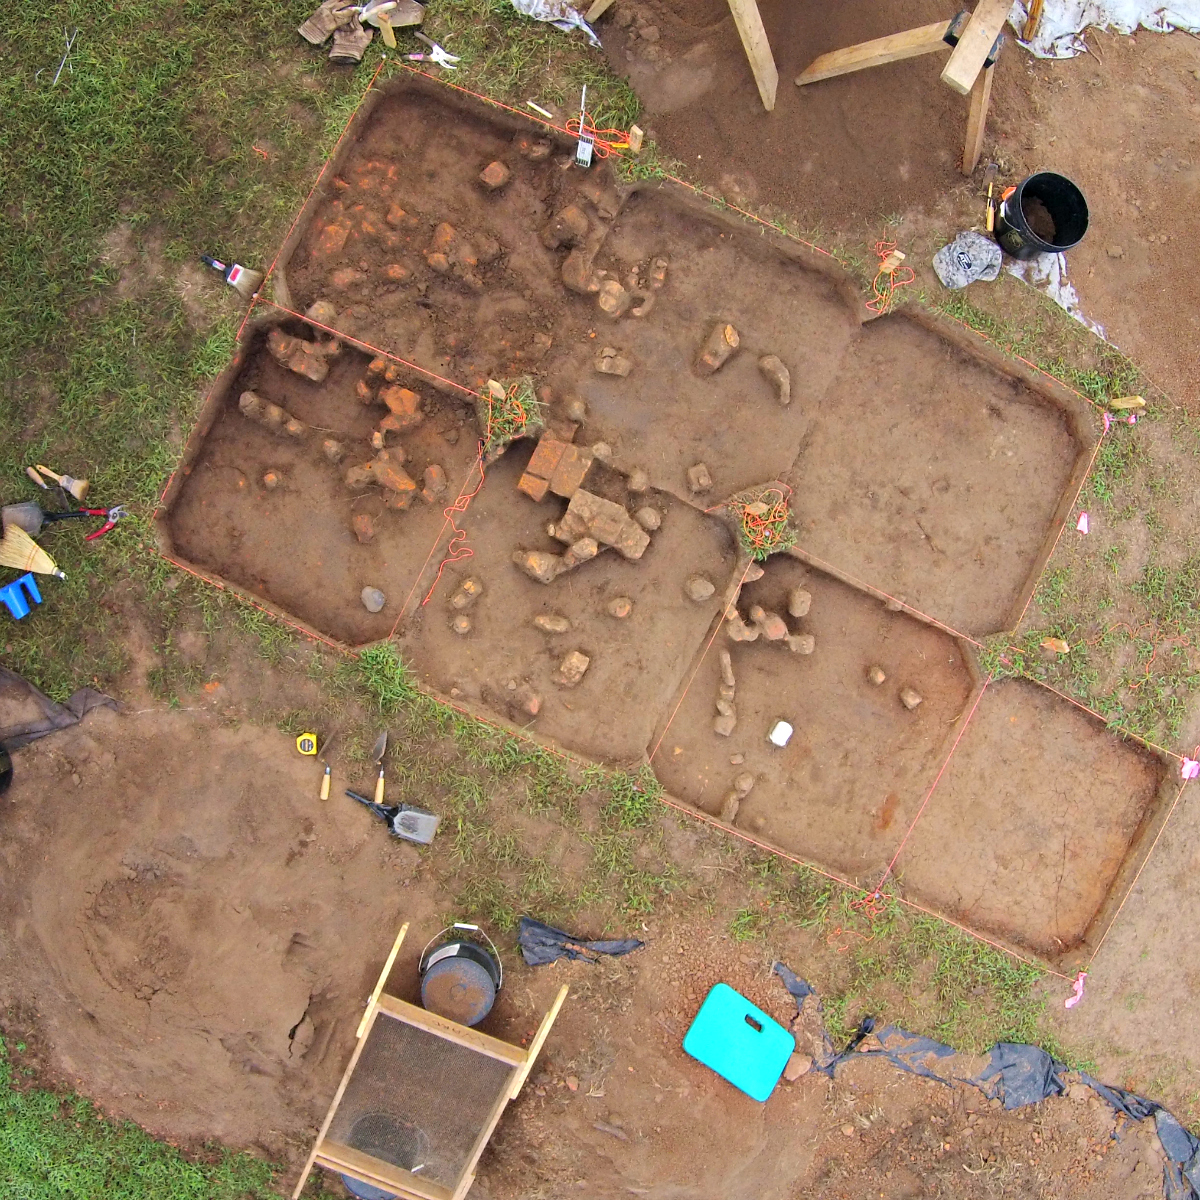 Aerial view of excavation site